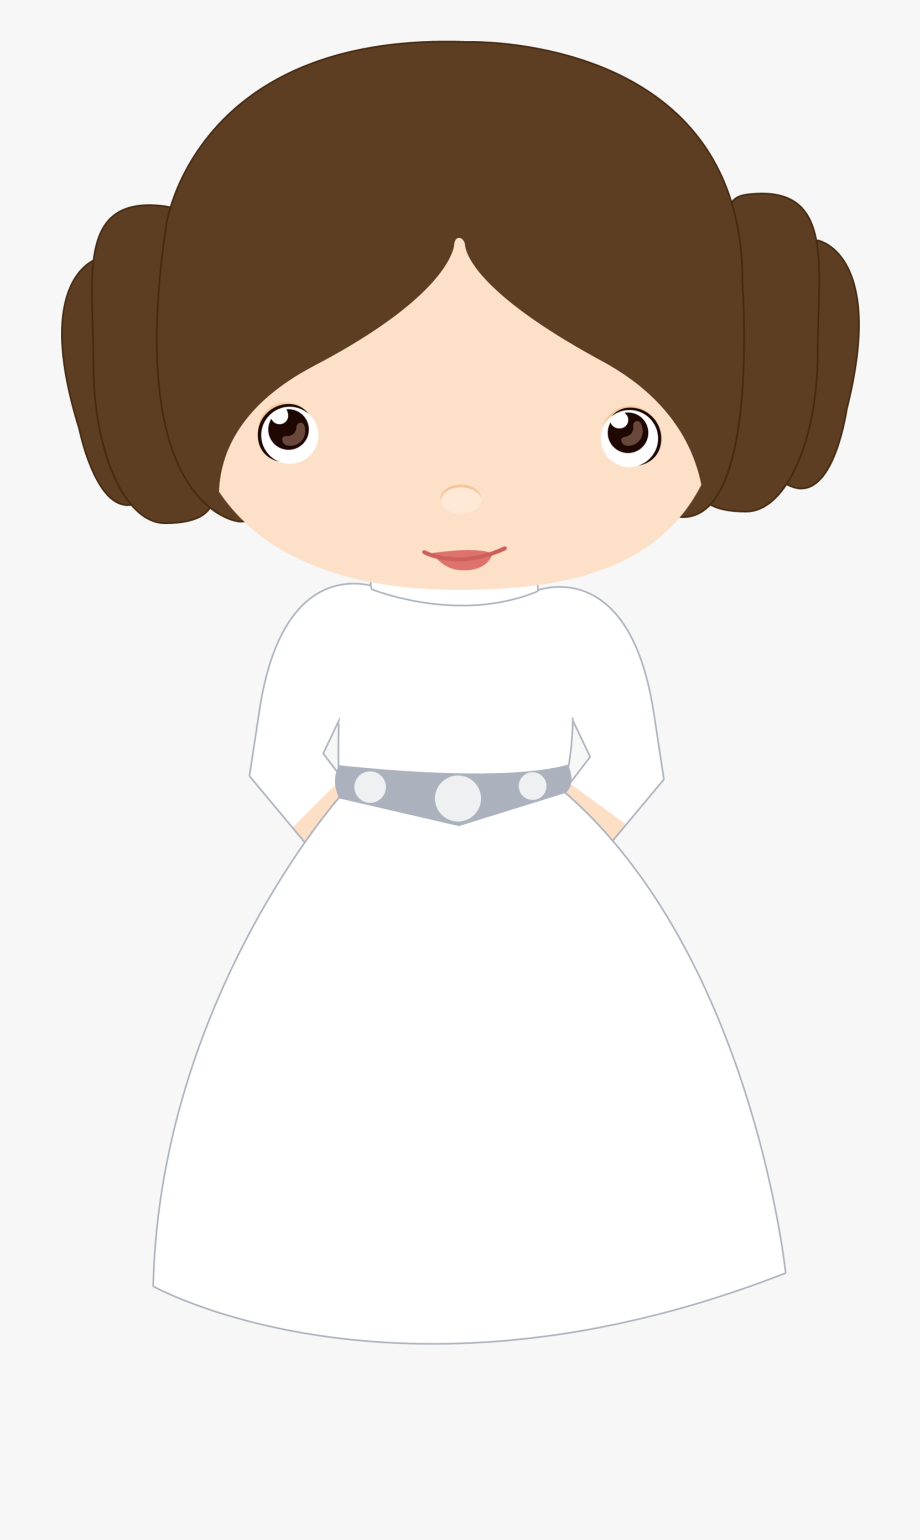 Starwars clipart princess leia. Clip black and white